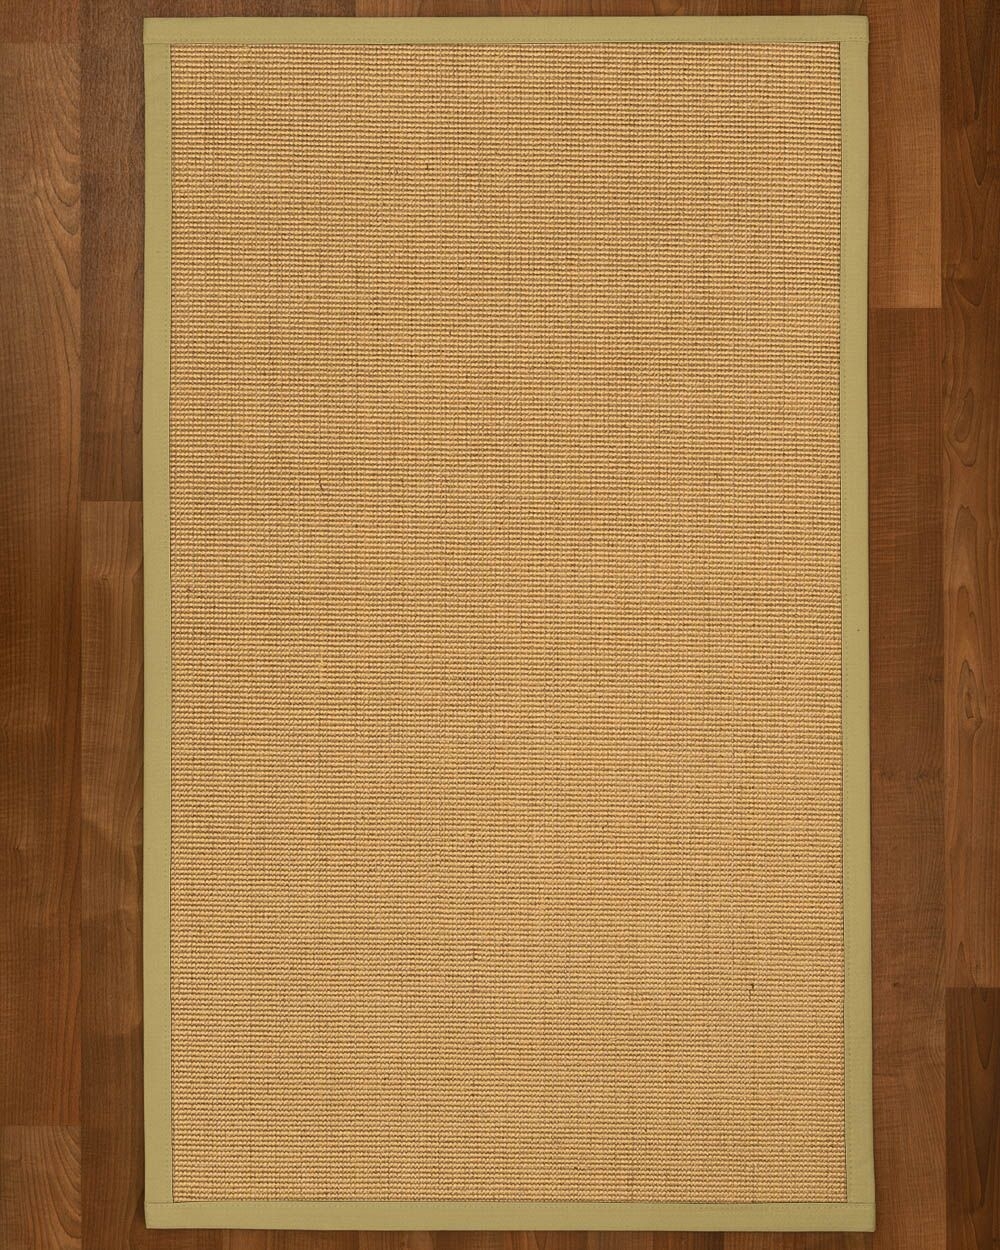 Lanie Hand Woven Beige Area Rug Rug Size: Rectangle 8' X 10'